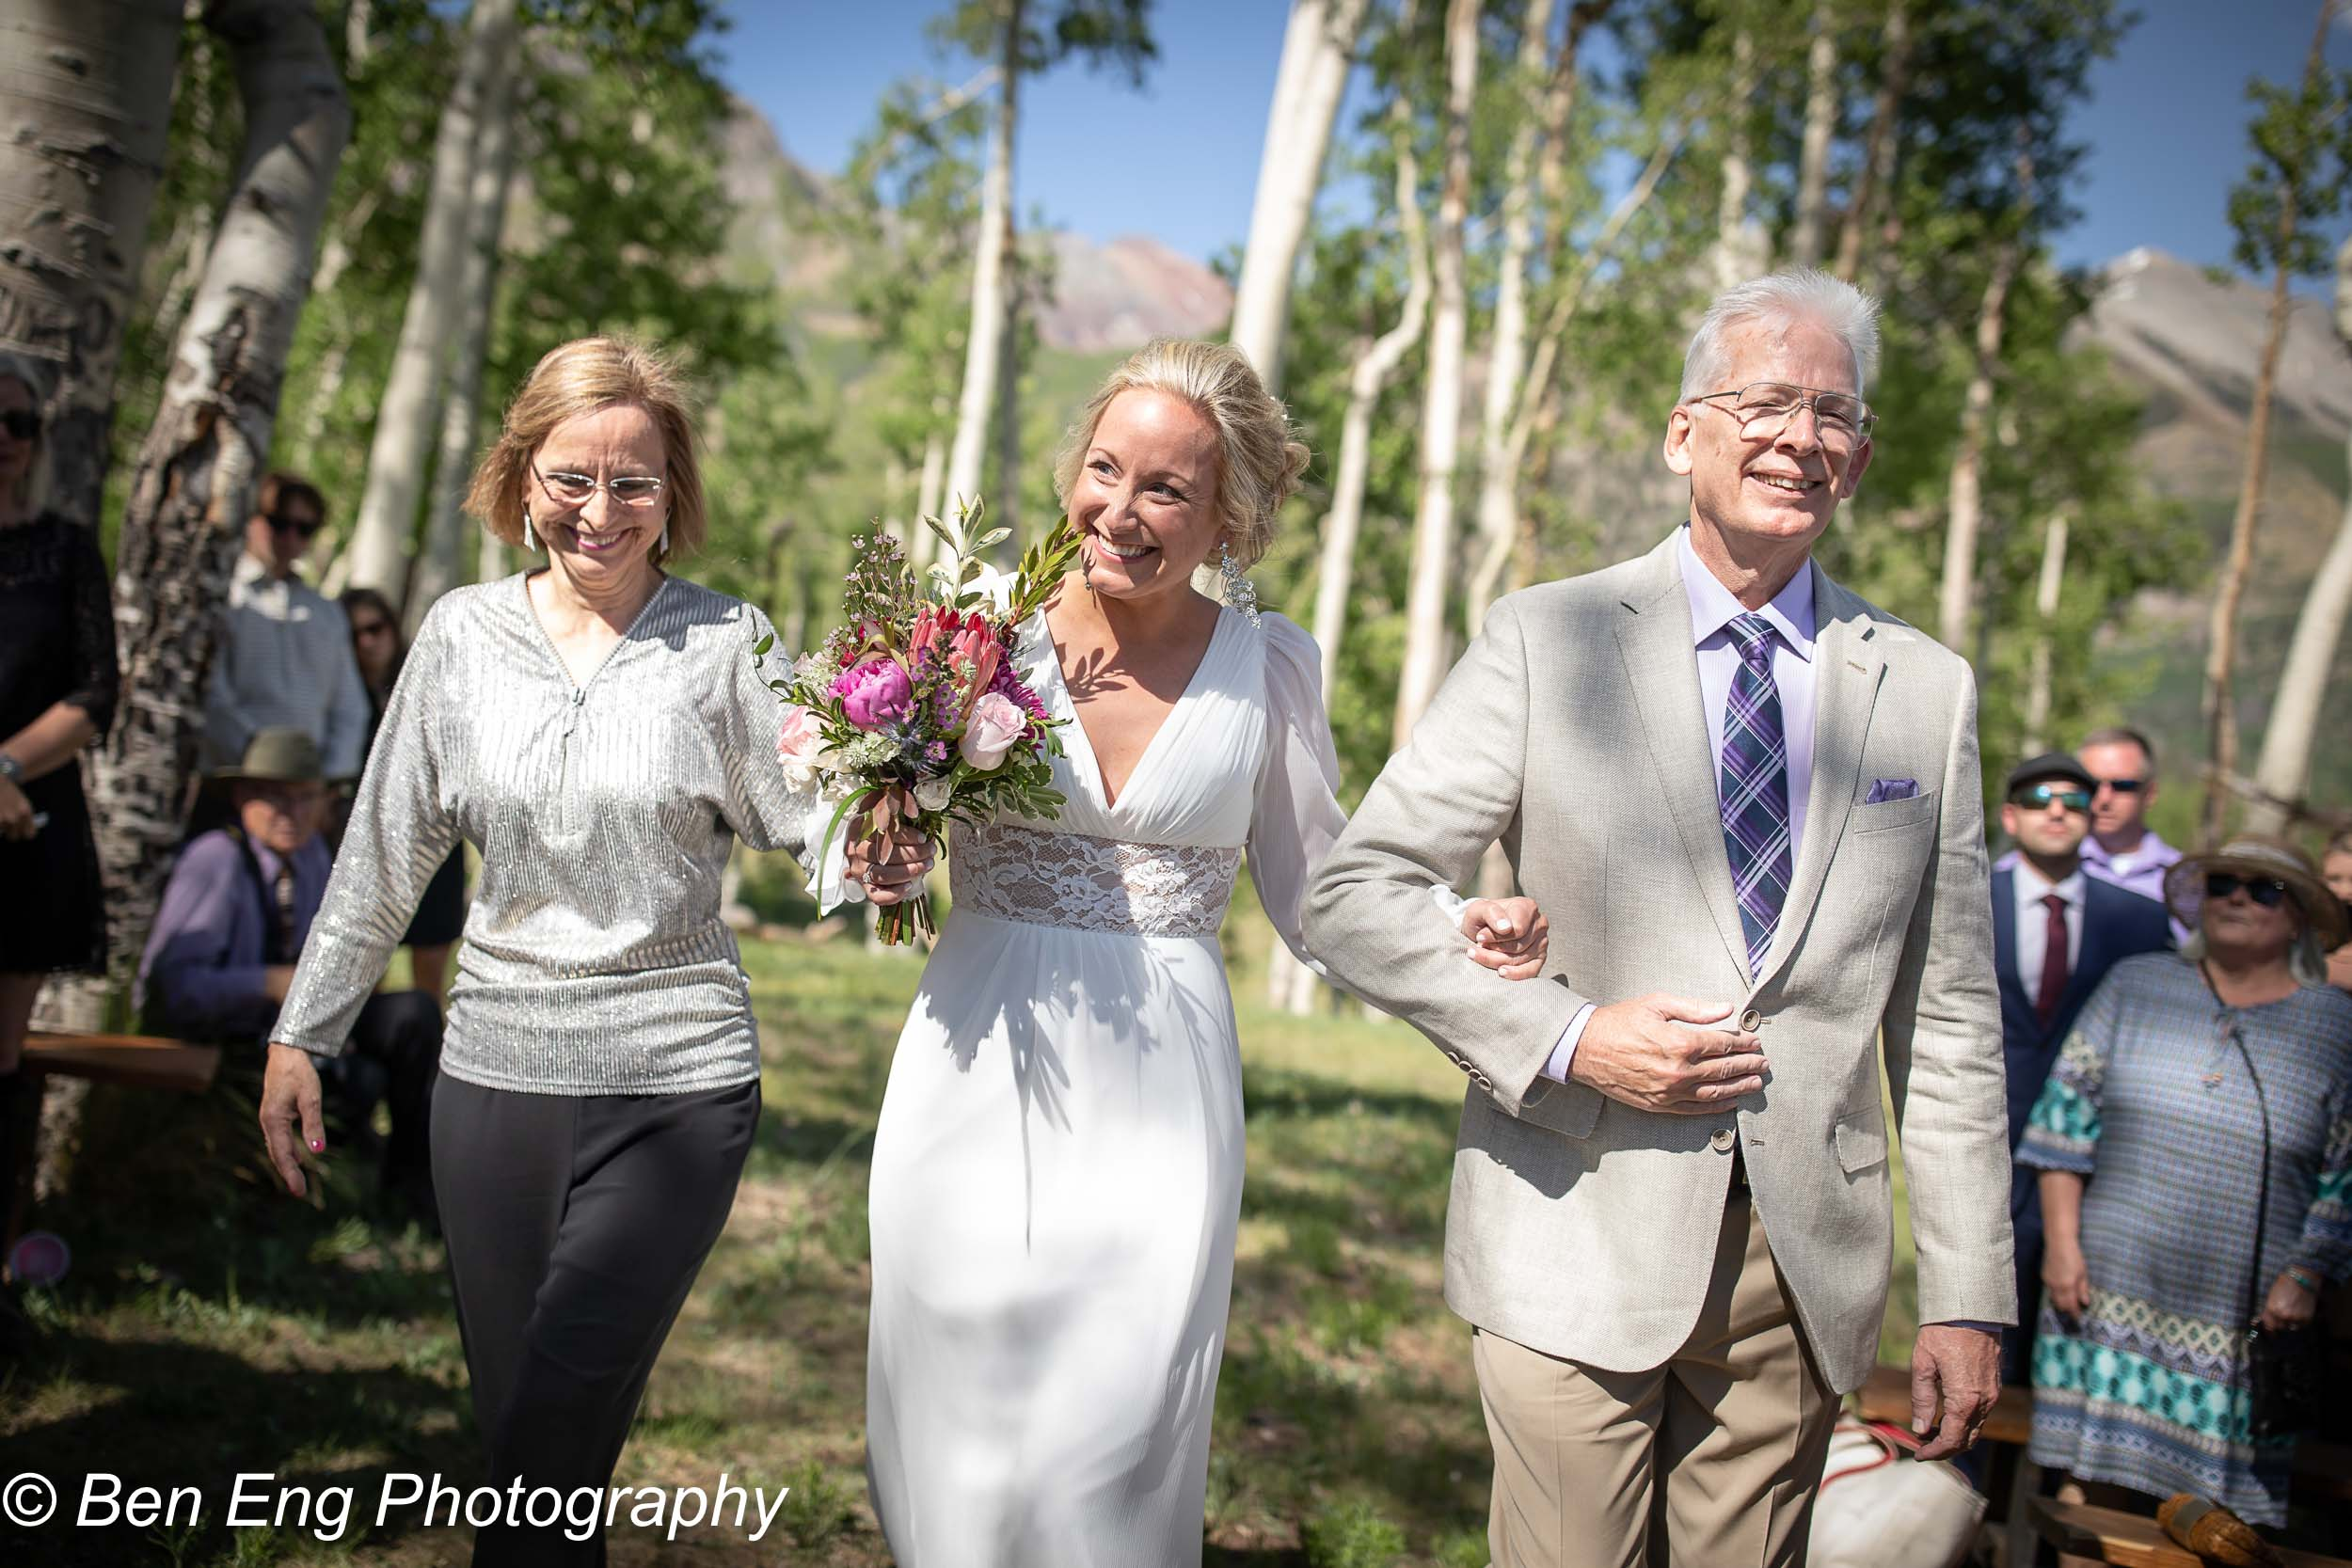 Sneak peek of Heather and Wes's wedding at Telluride Sleighs & Wagons in the mountains of Colorado. Wedding photography by Ben Eng.